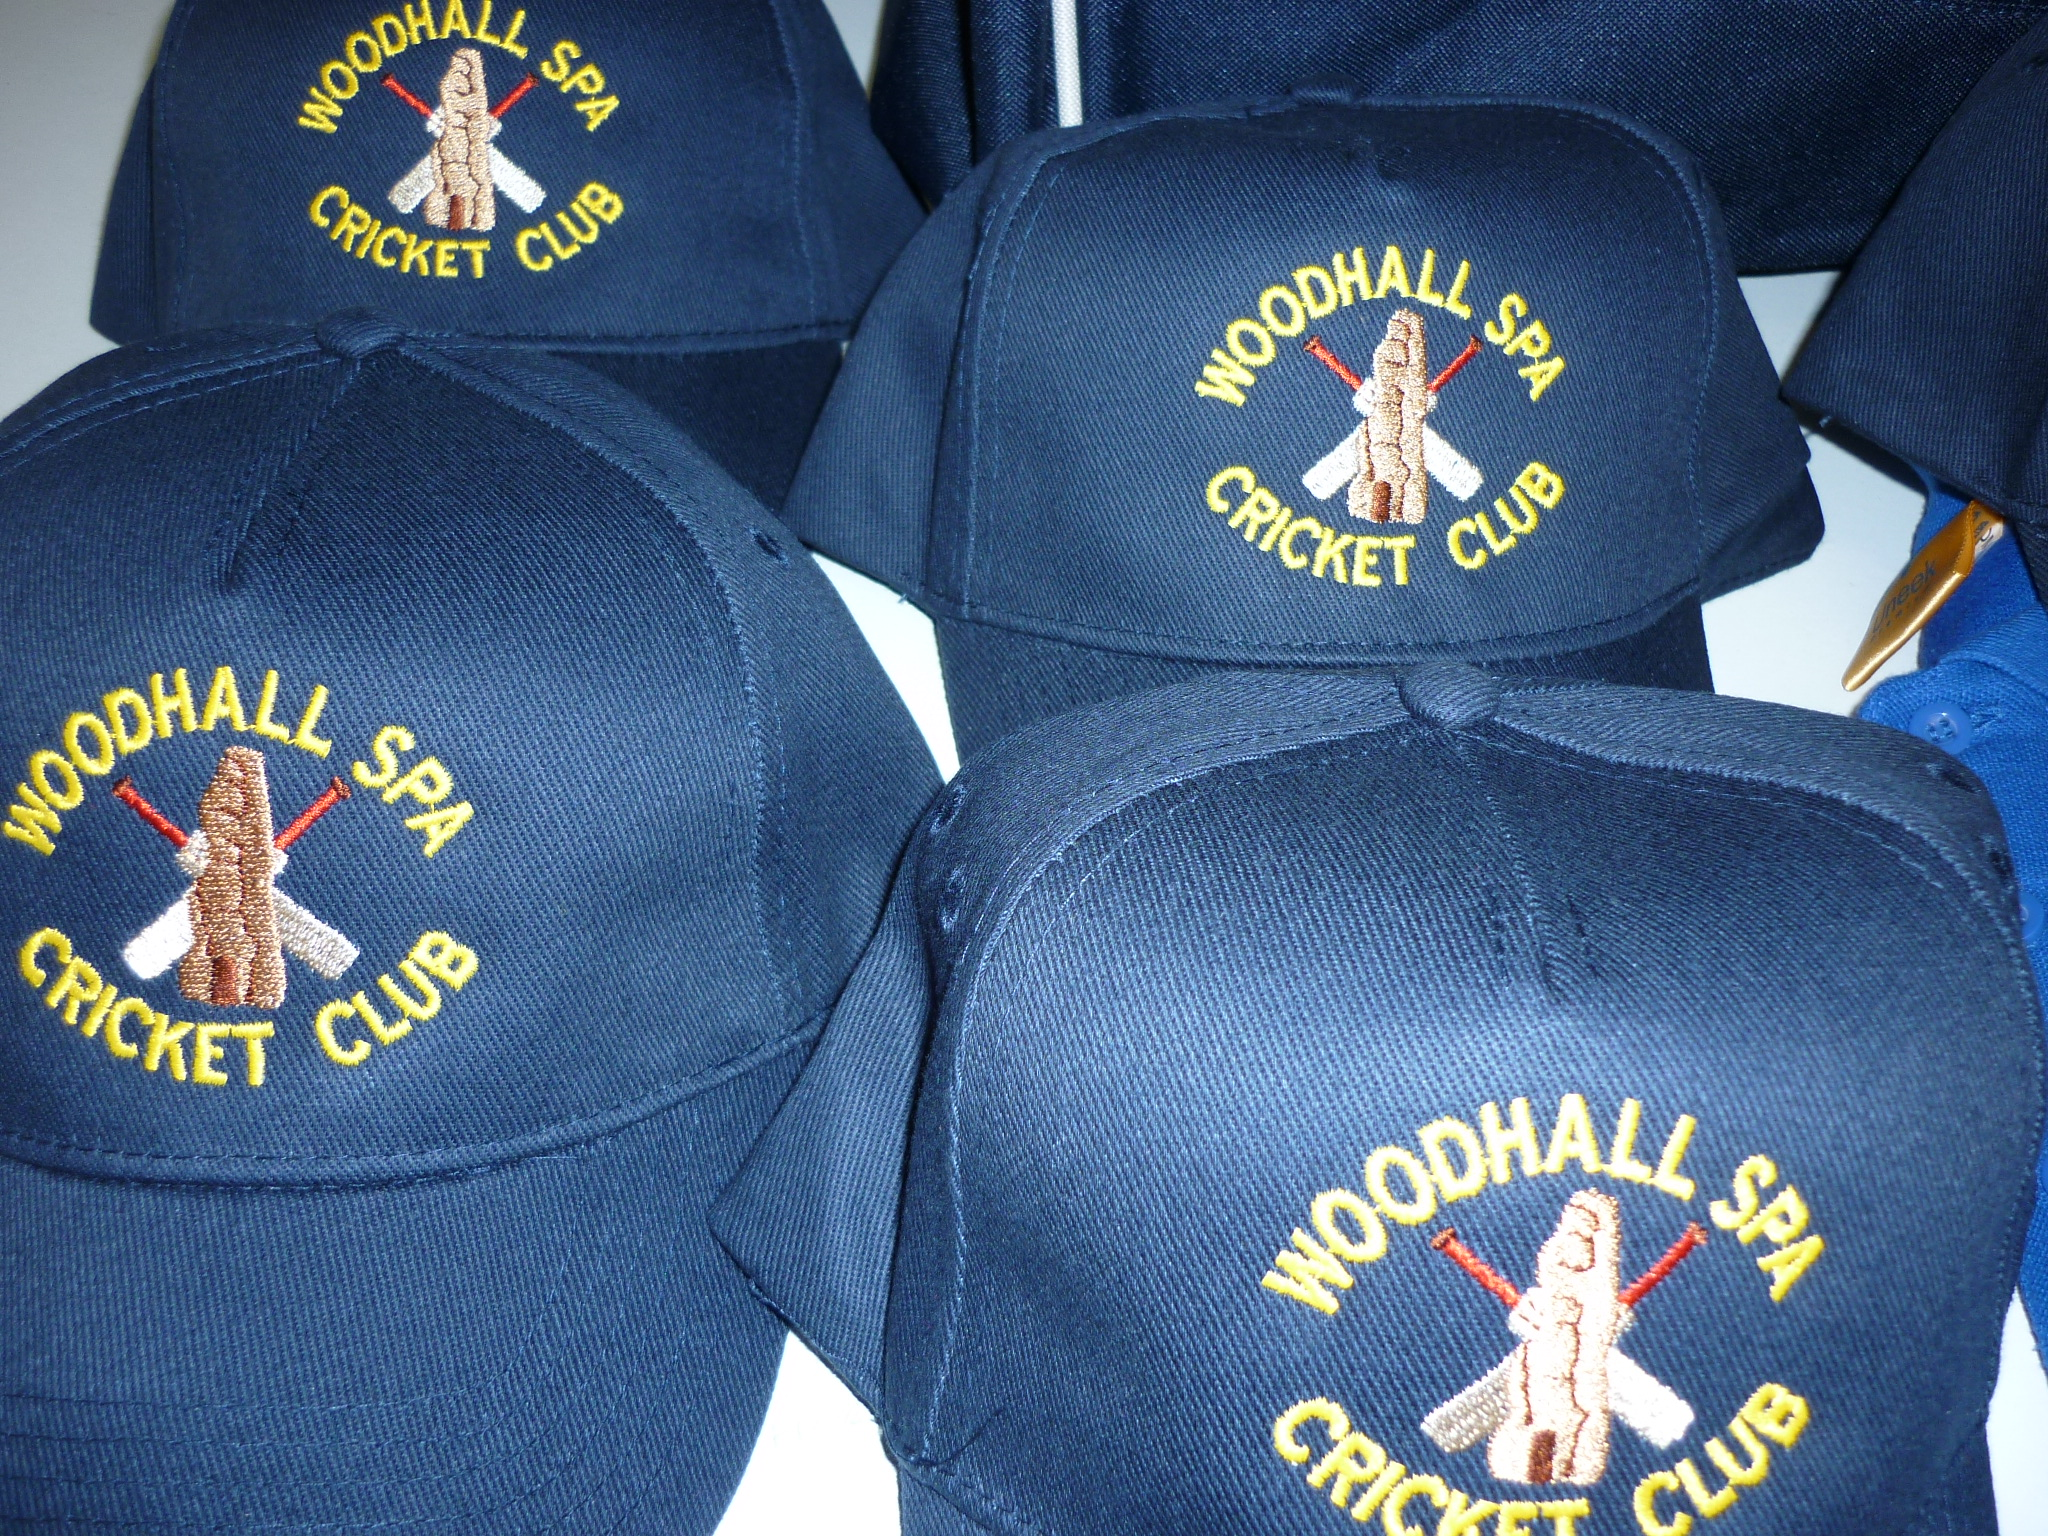 Cricket Club Shani's Embroidery